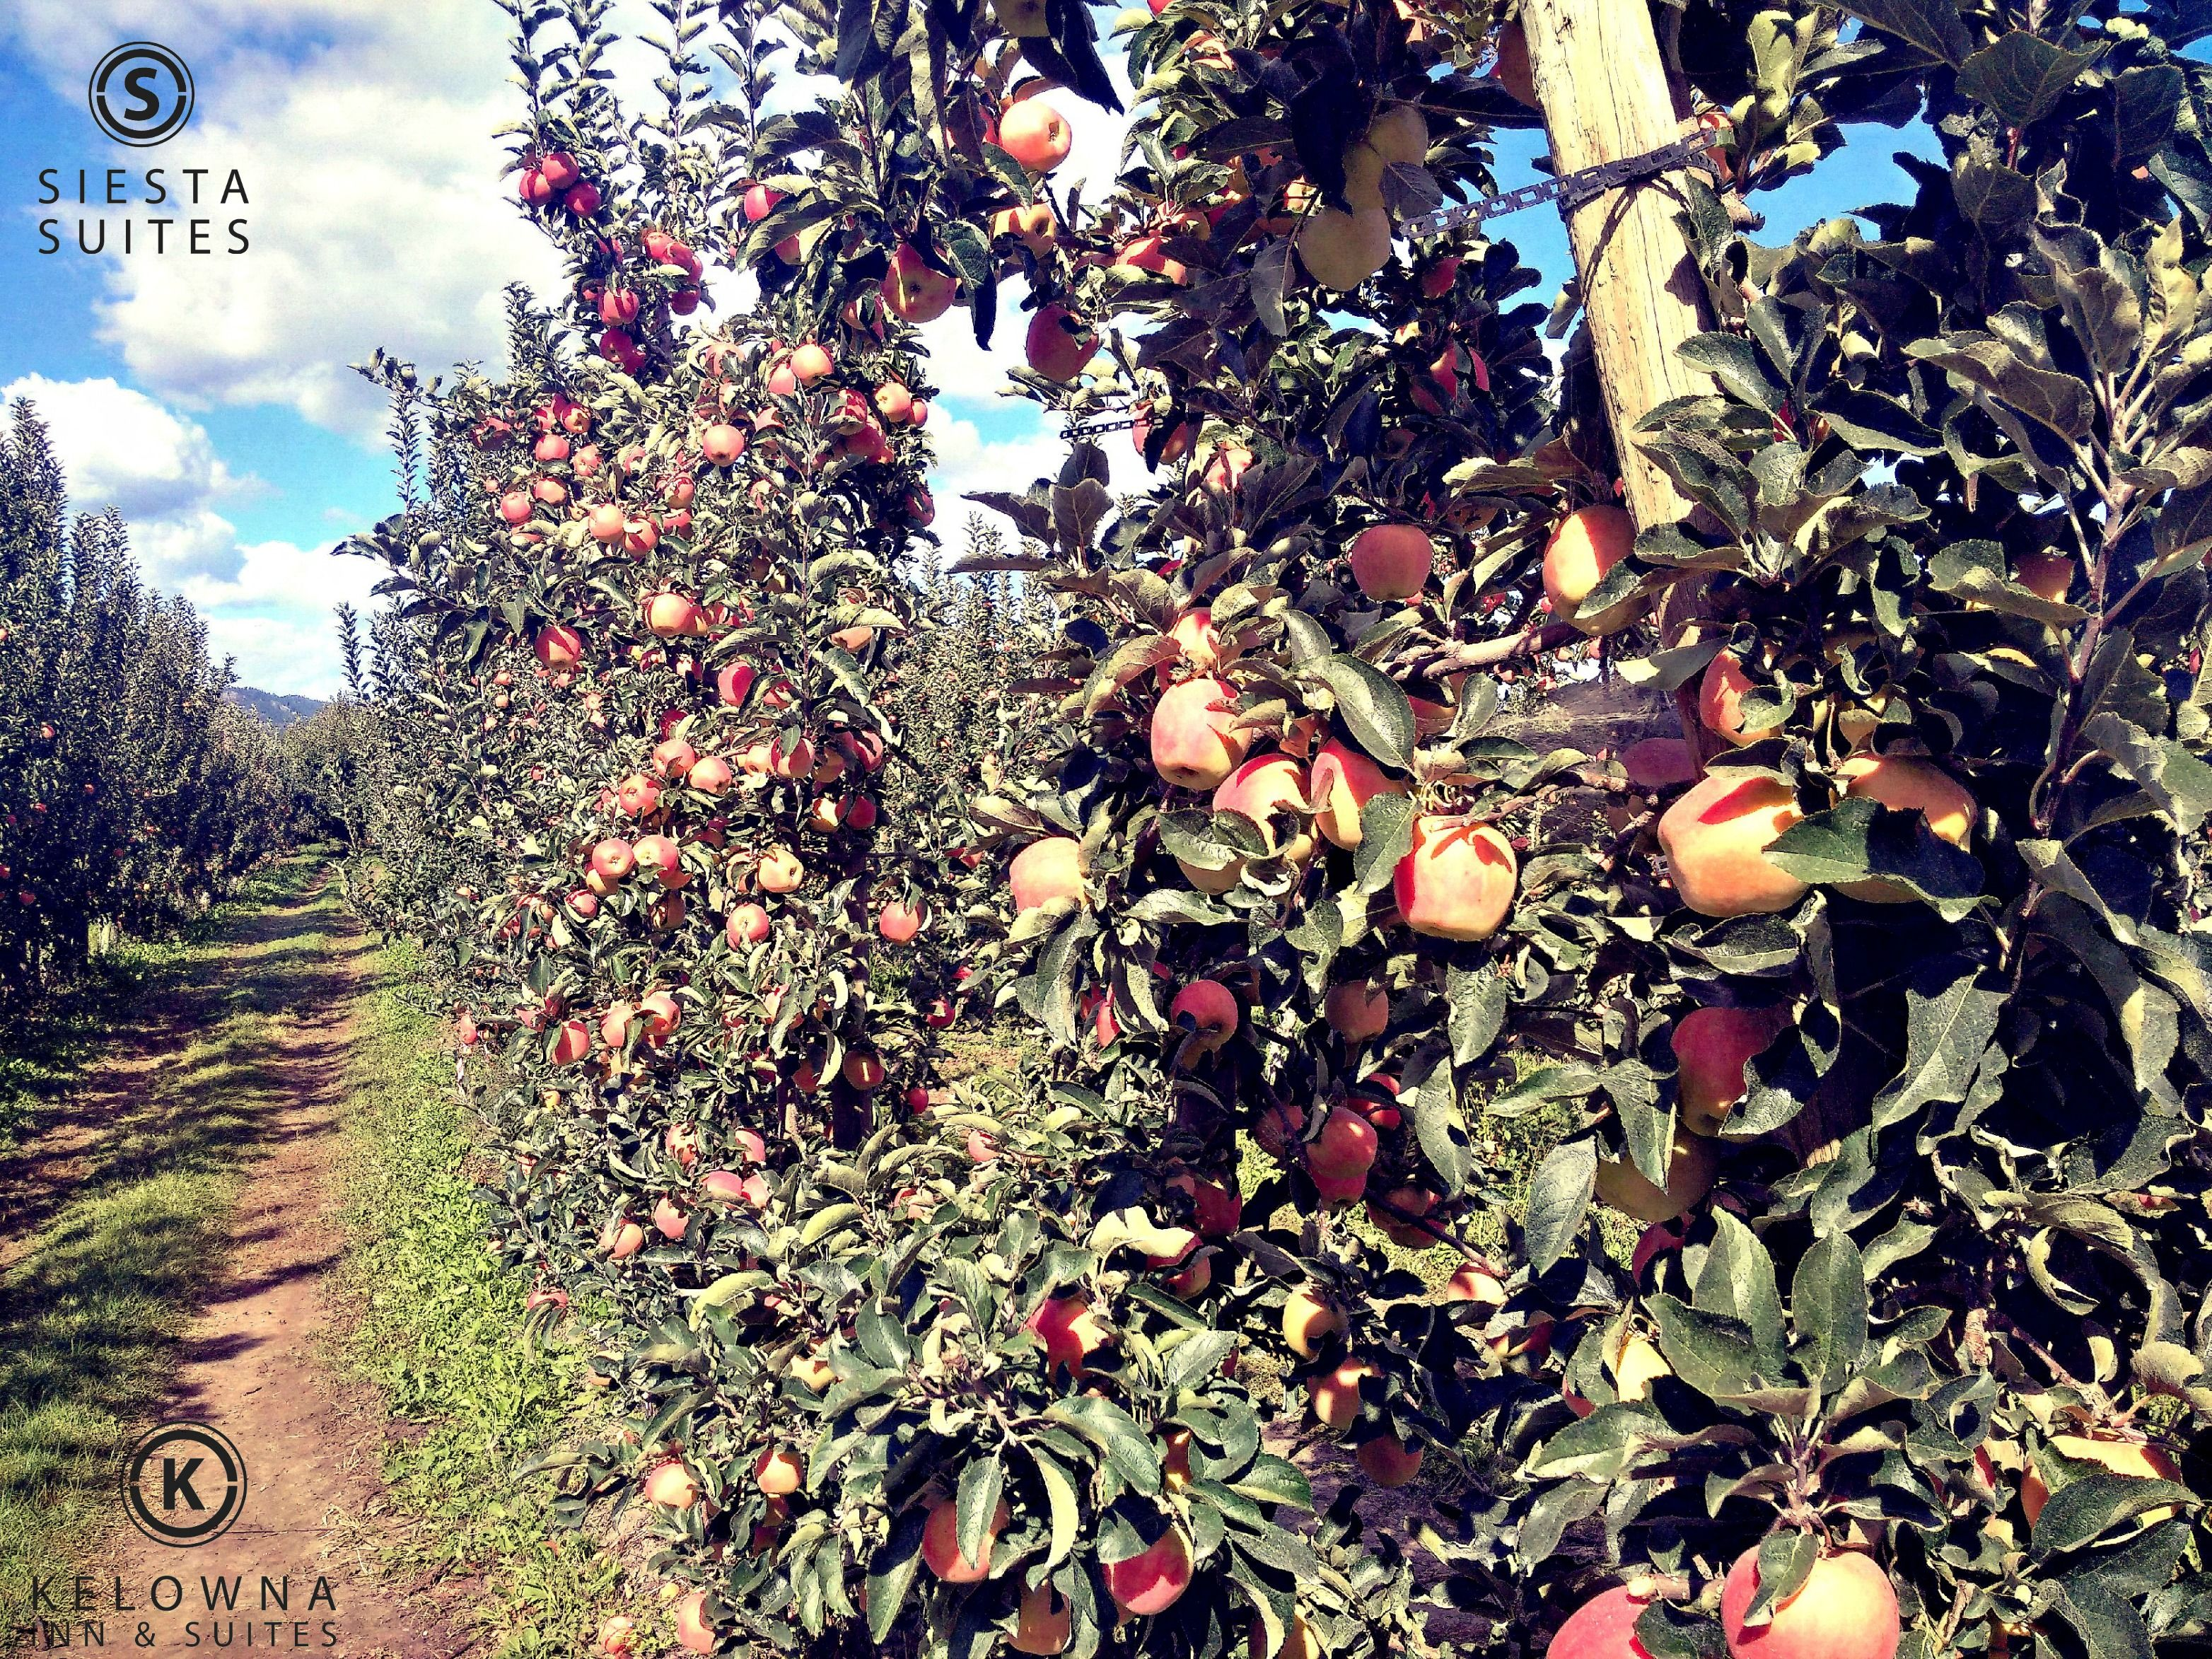 Our Okanagan apples are all grown up and ready to see the